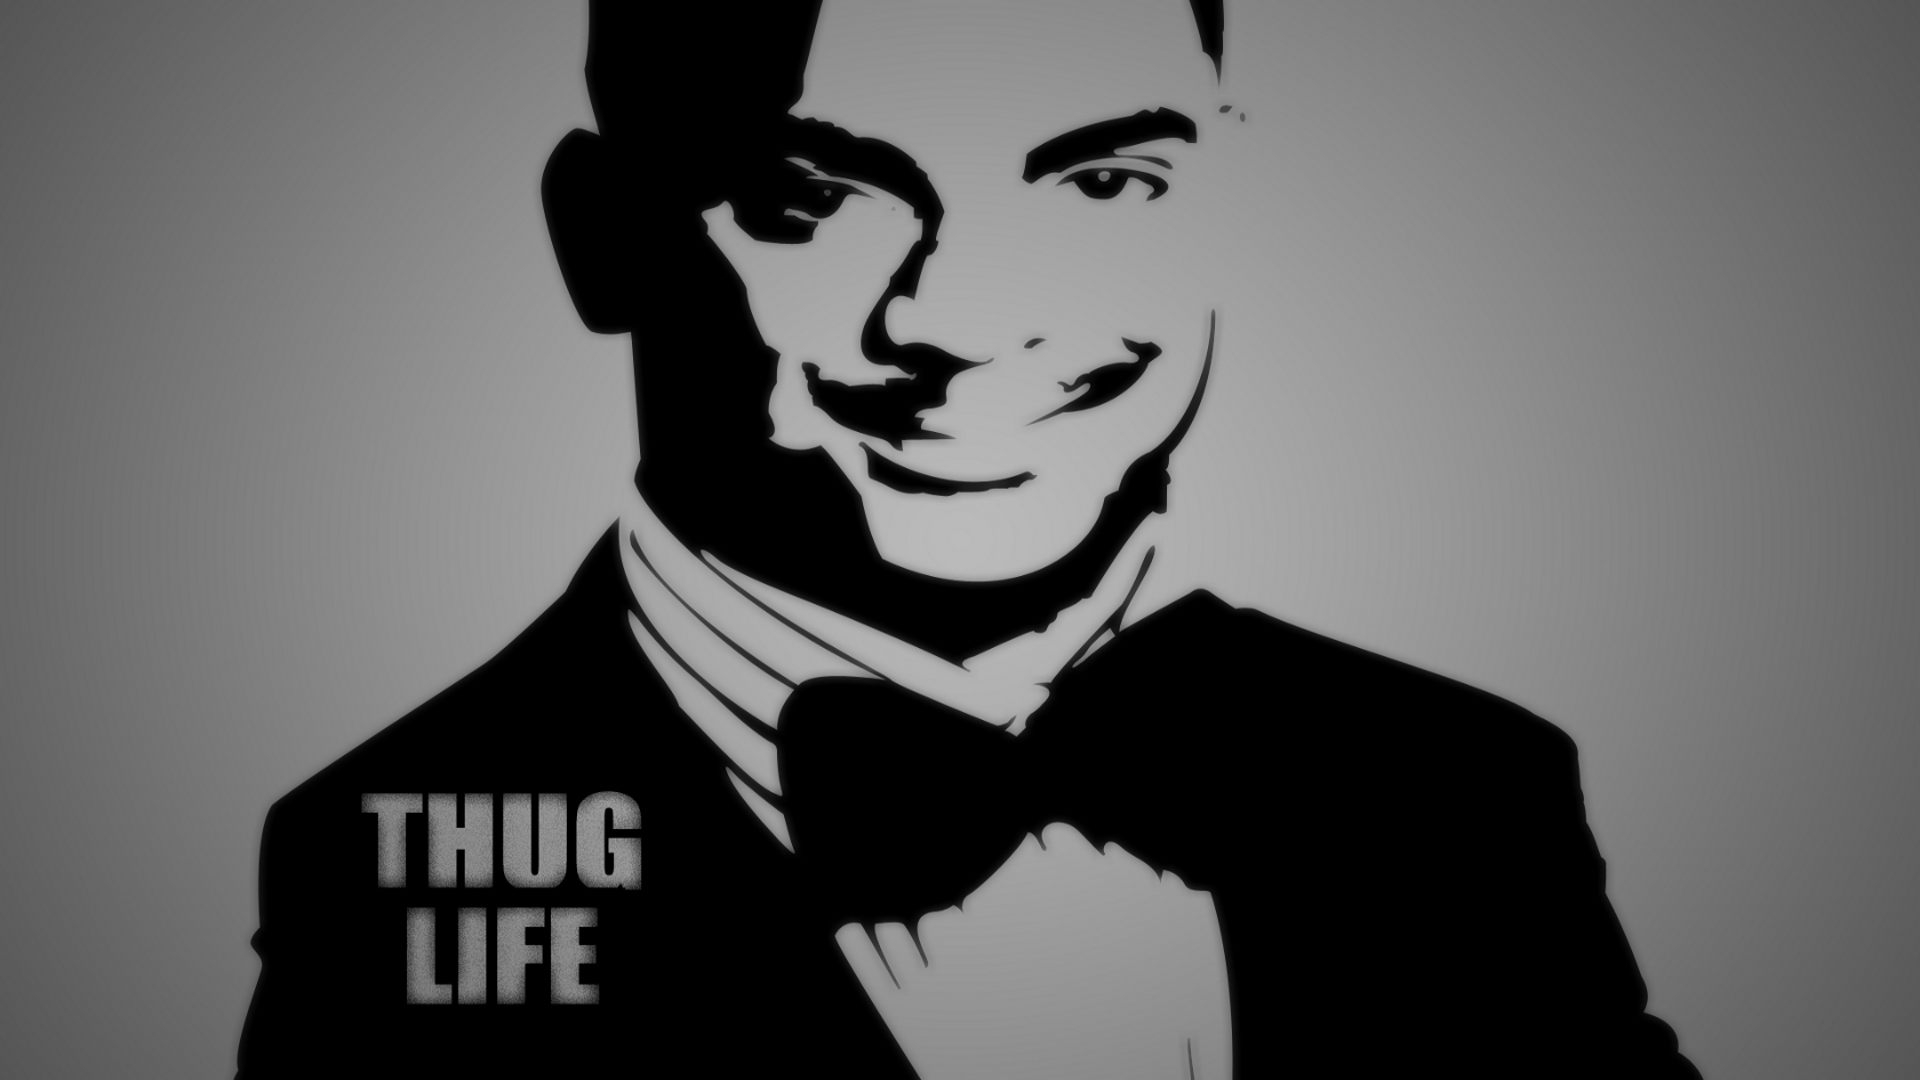 Thug Life Backgrounds